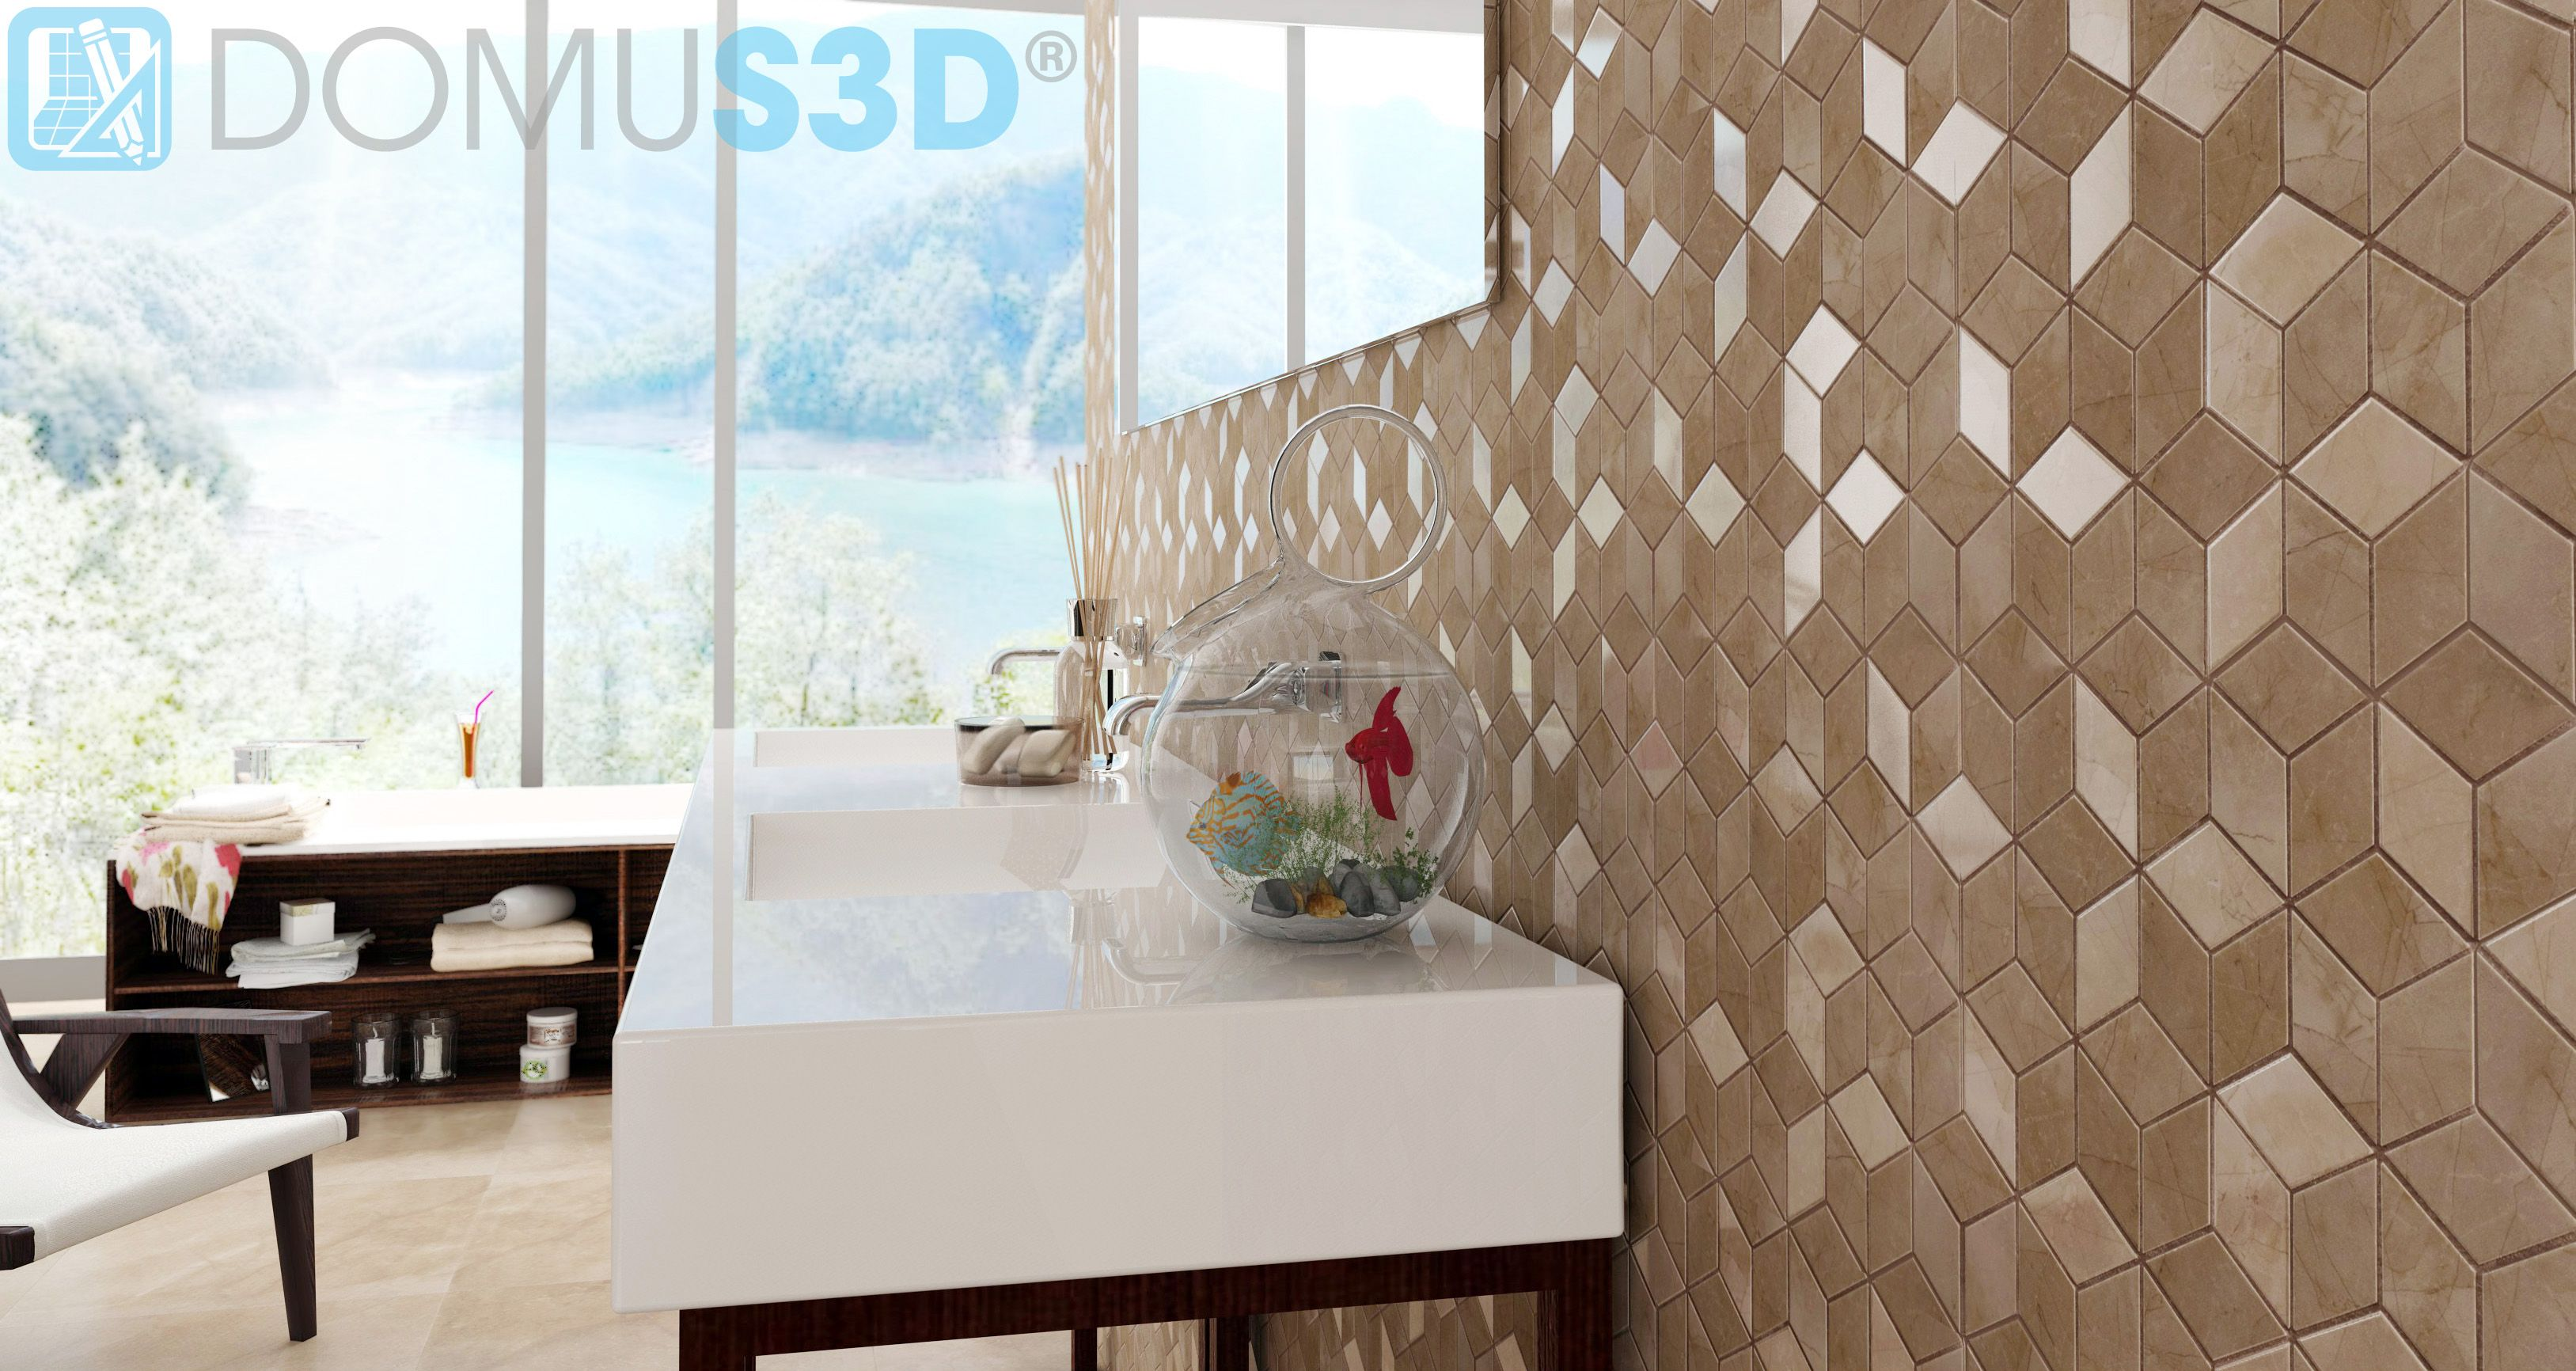 Gamma 2 Tiles Virtual Image Rendered With Domus3d And Mental Ray  # Muebles Vassily